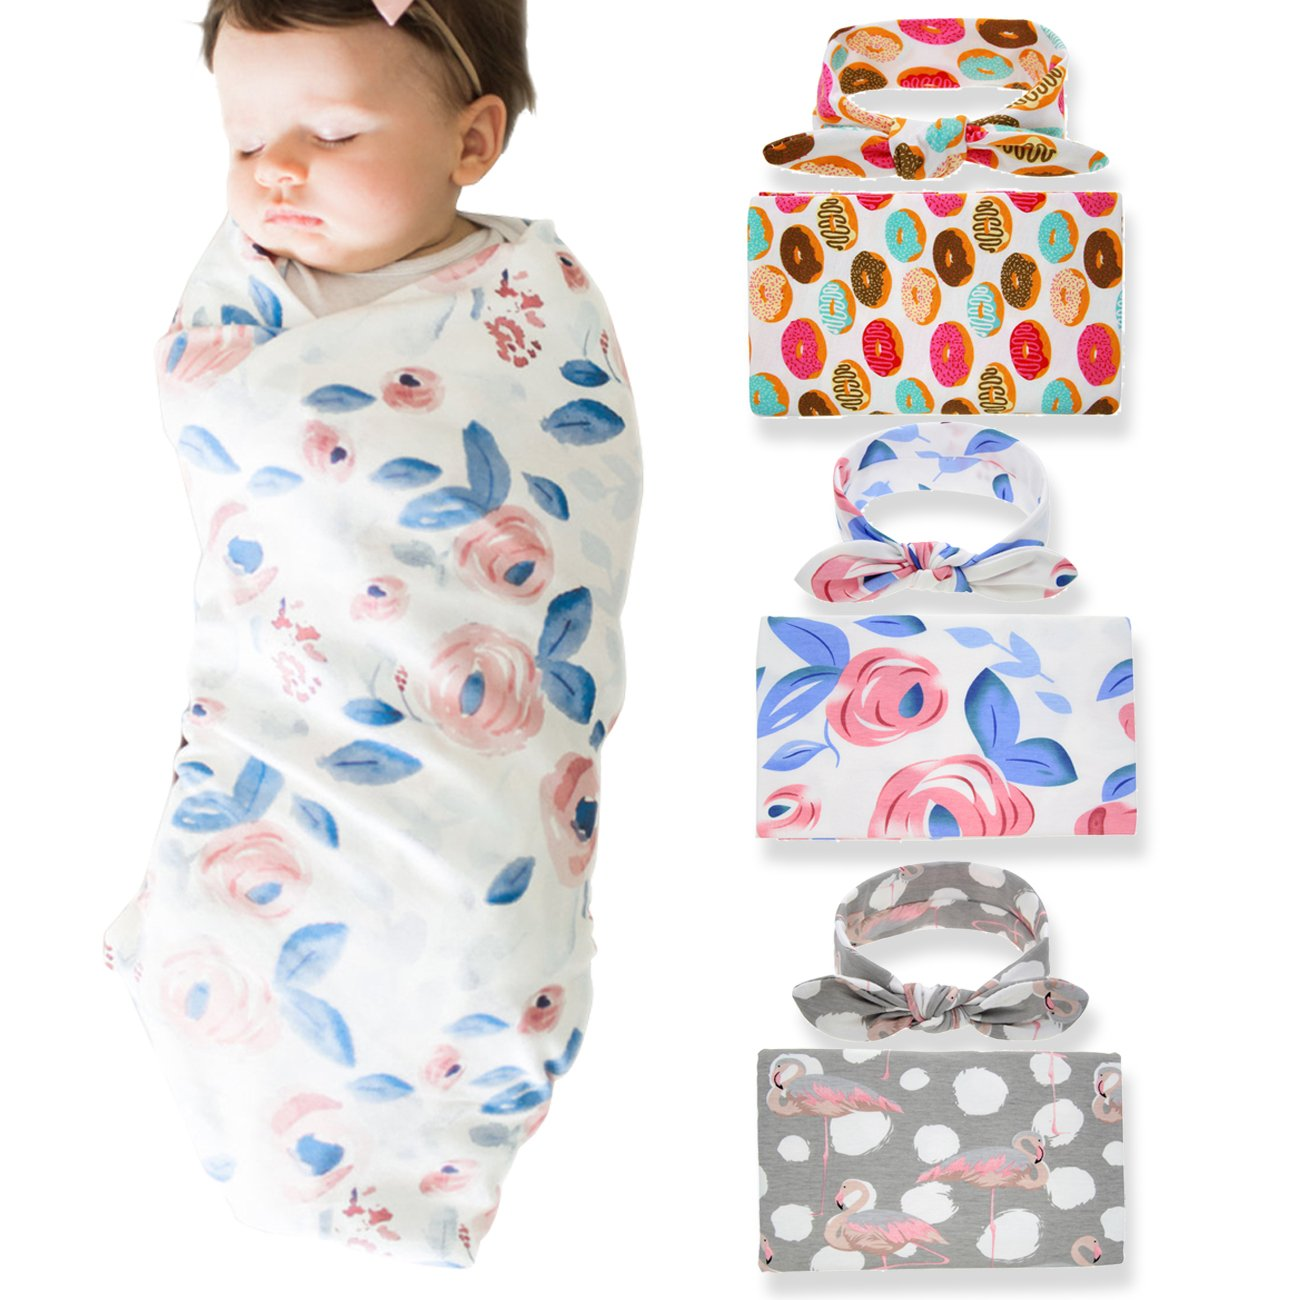 3 Pack Newborn Floral Swaddle BQUBO Receiving Blanket with Headbands Hats Sleepsack Toddler Warm